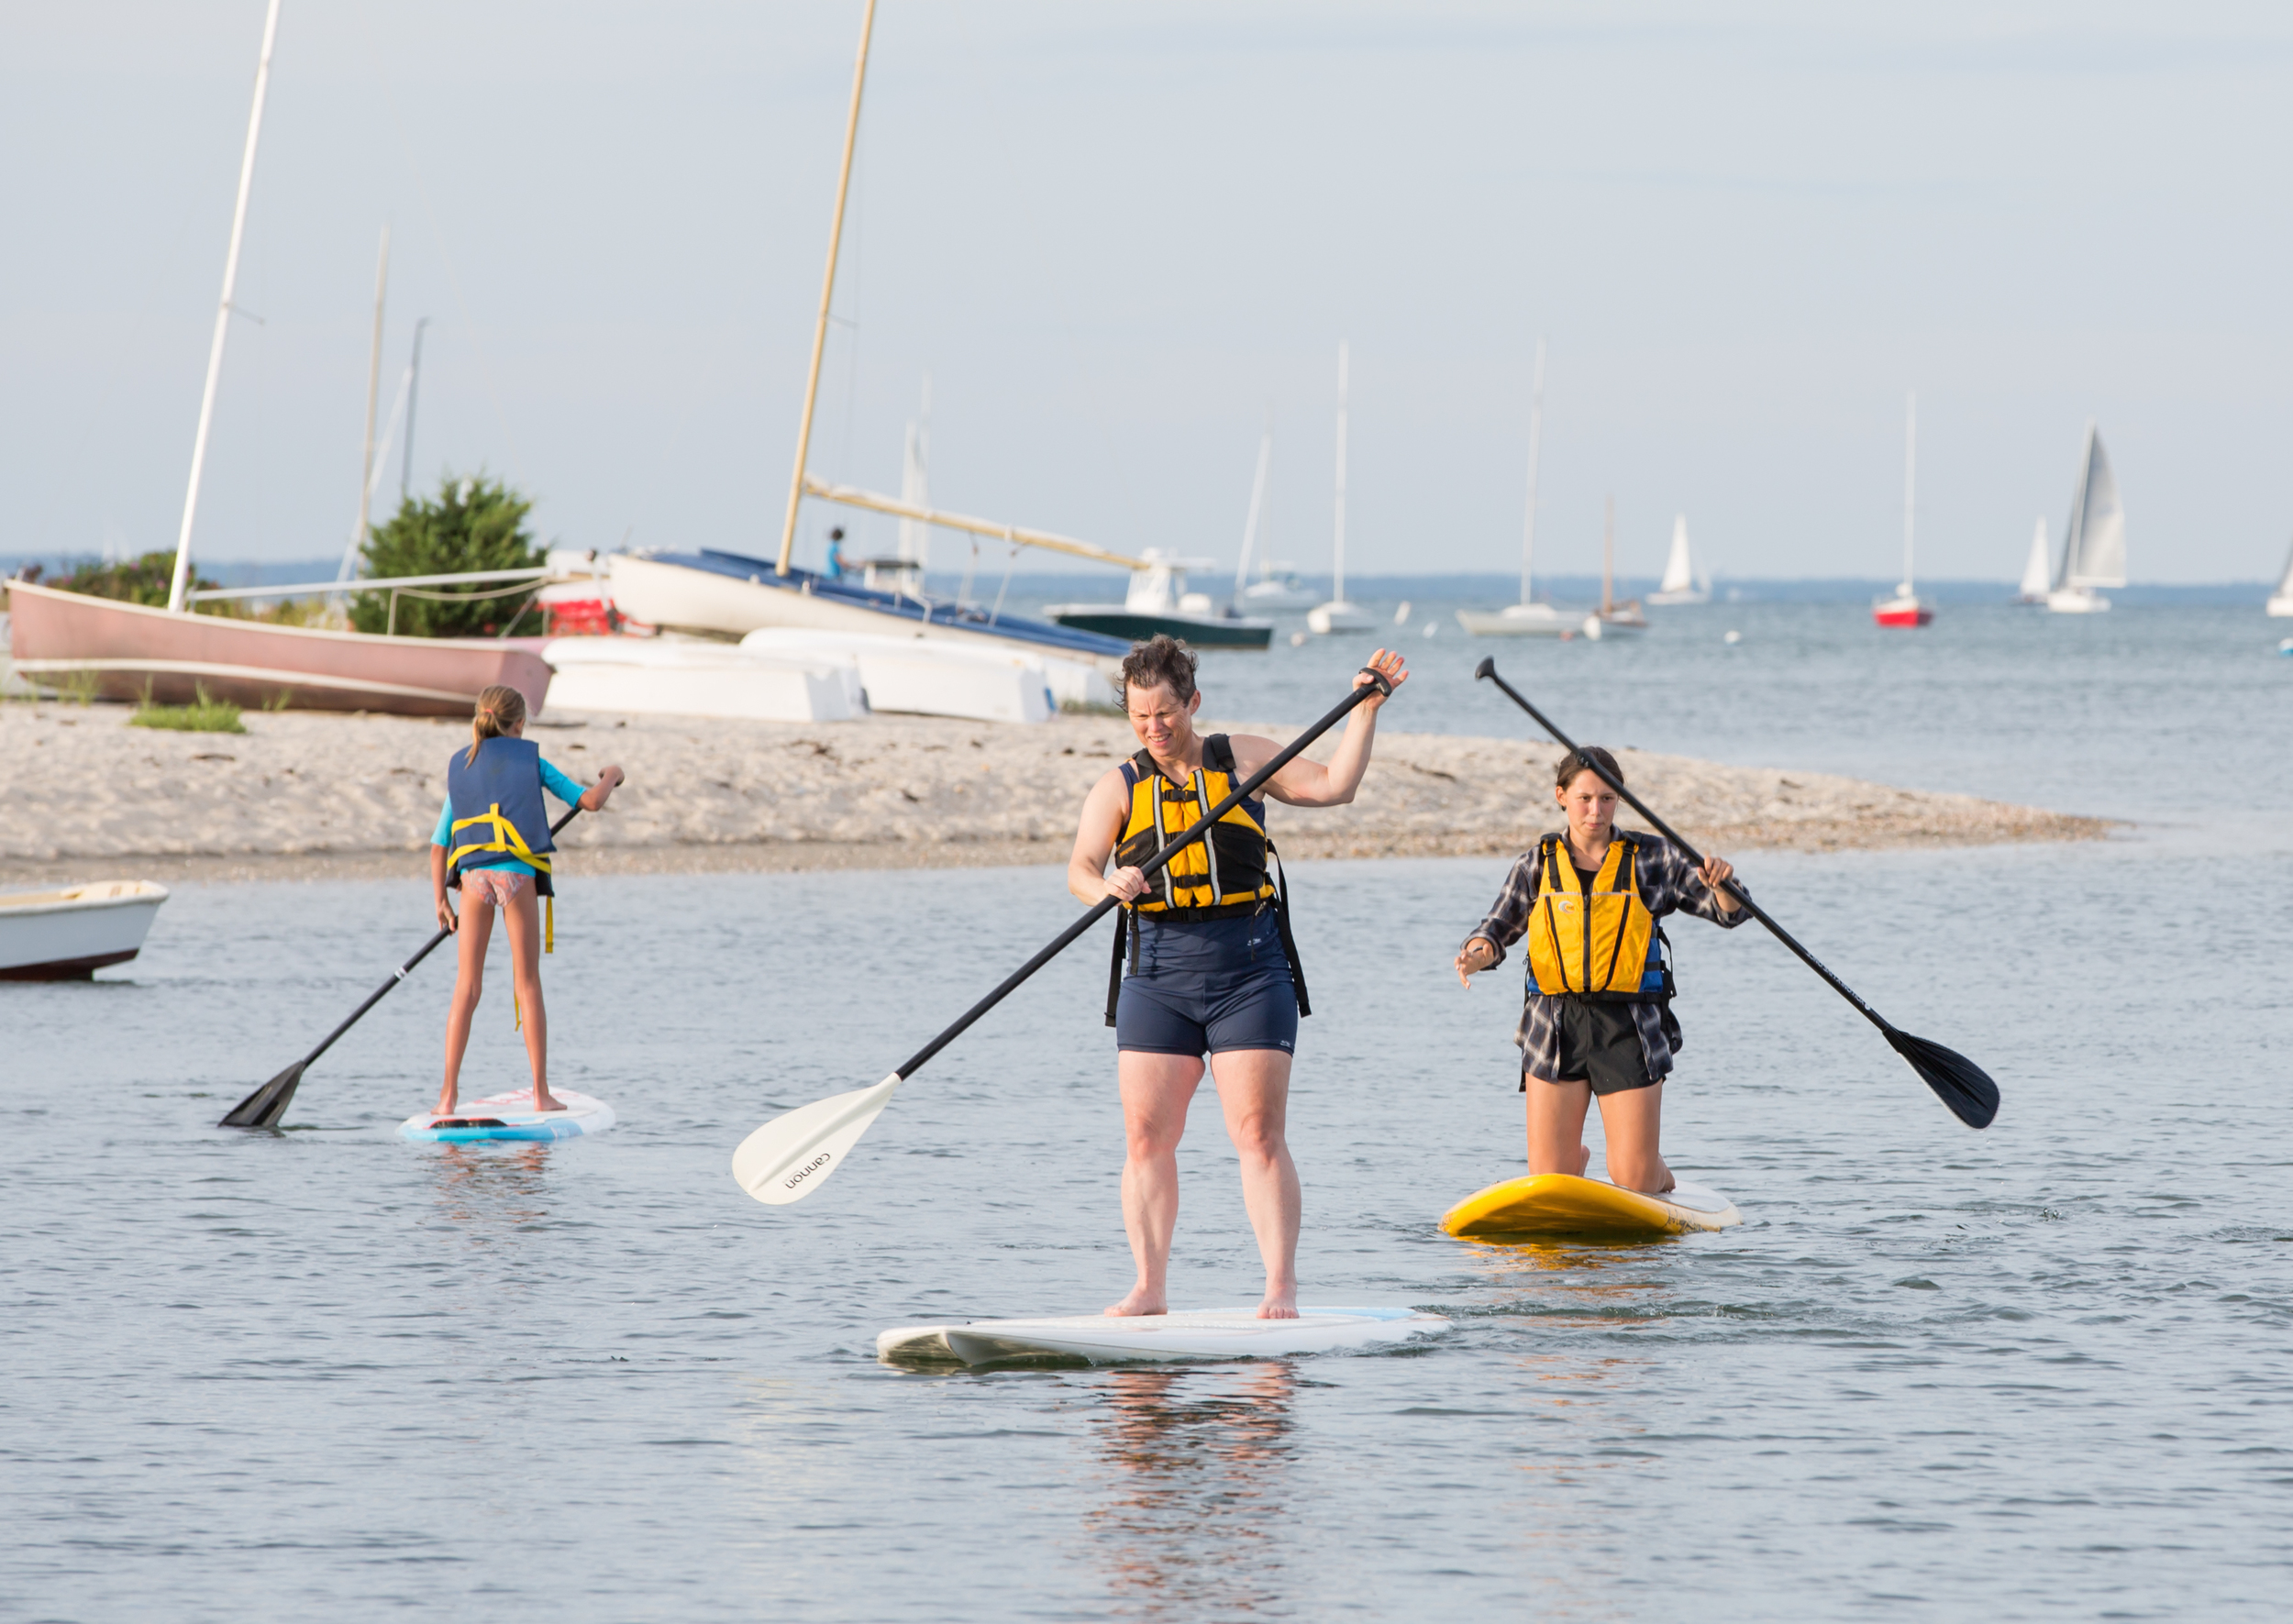 The MVFF's second annual SURF NIGHT on August 6, 2015, started with free community paddleboarding around Vineyard Haven Harbor, followed by an outdoor screening of surf films and a presentation by big-wave surfer Greg Long.Photo by Maria Thibodeau.